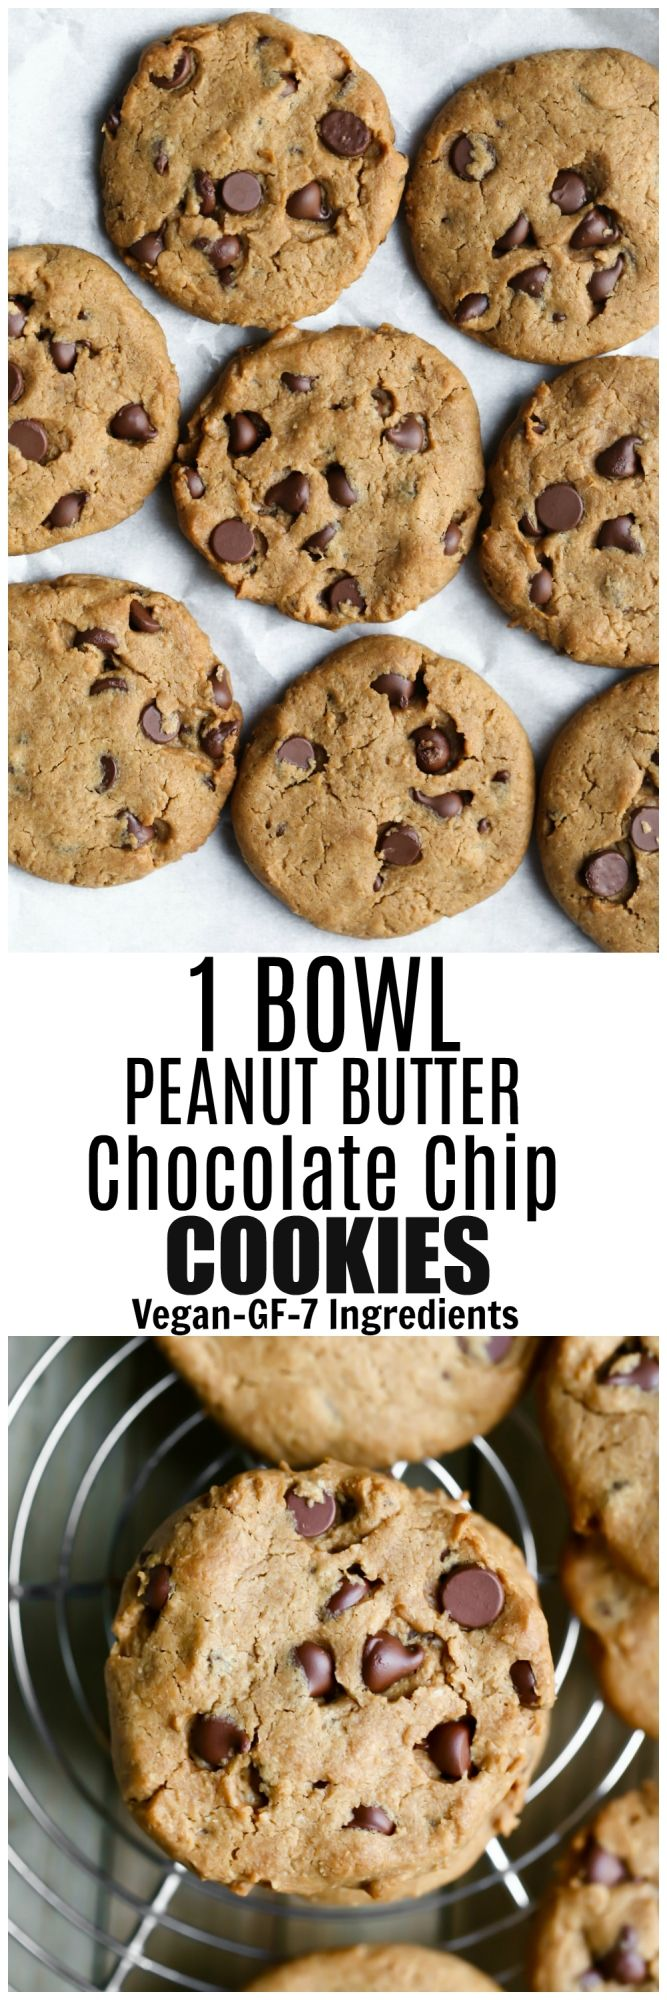 The most delicious and easy Vegan Gluten-free Peanut Butter Chocolate Chip Cookies that are made in 1 bowl, are oil-free, dairy-free and ready in about 20 minutes! via @thevegan8